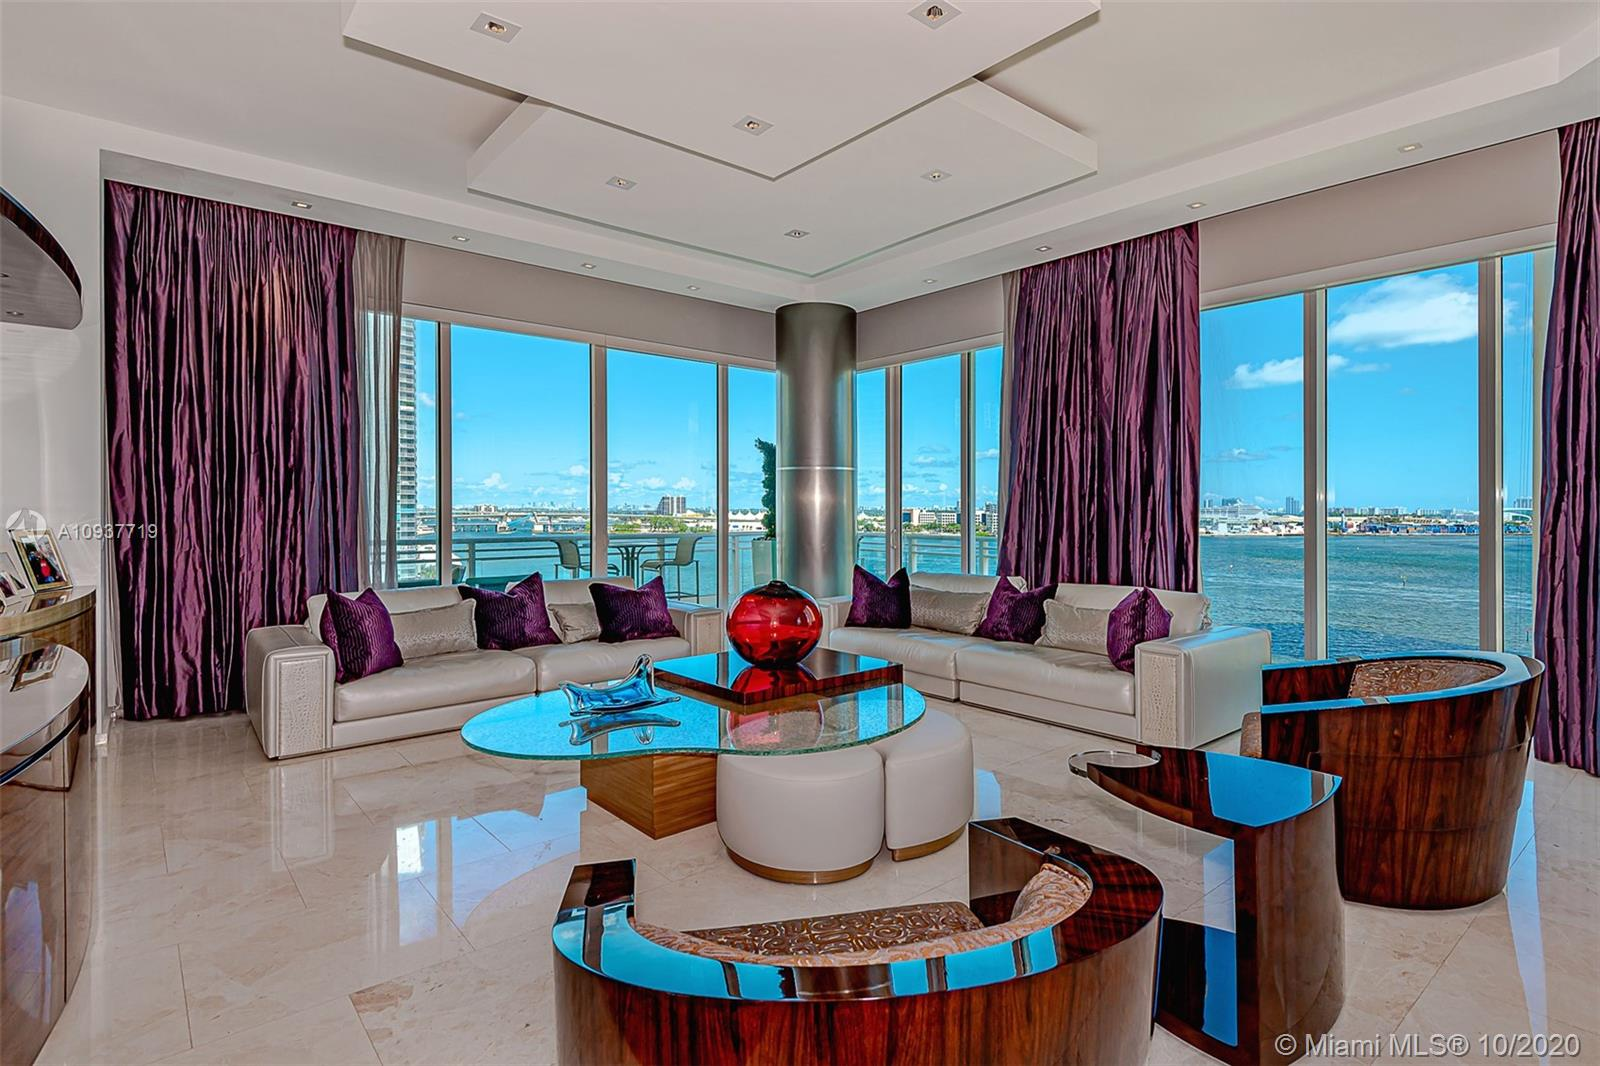 Spectacular corner unit in Asia, Brickell's most exclusive building w/only 123 units! Unit was remodeled and finished to perfection- no expense was spared. Floor-to-ceiling windows allow you to enjoy the stunning views of Downtown, river, and bay. Unit has private elevator, 12ft ceilings, top of the line kitchen & bath, and Creston system. Unique plan on line 03 with a spacious den that became a bedroom with a custom made closet. Two parking spaces included. There is a tandem. Brickell Key amenities include 2 parks, playgrounds, Restaurants, Market, Beauty Salon, Dry Cleaners and more.